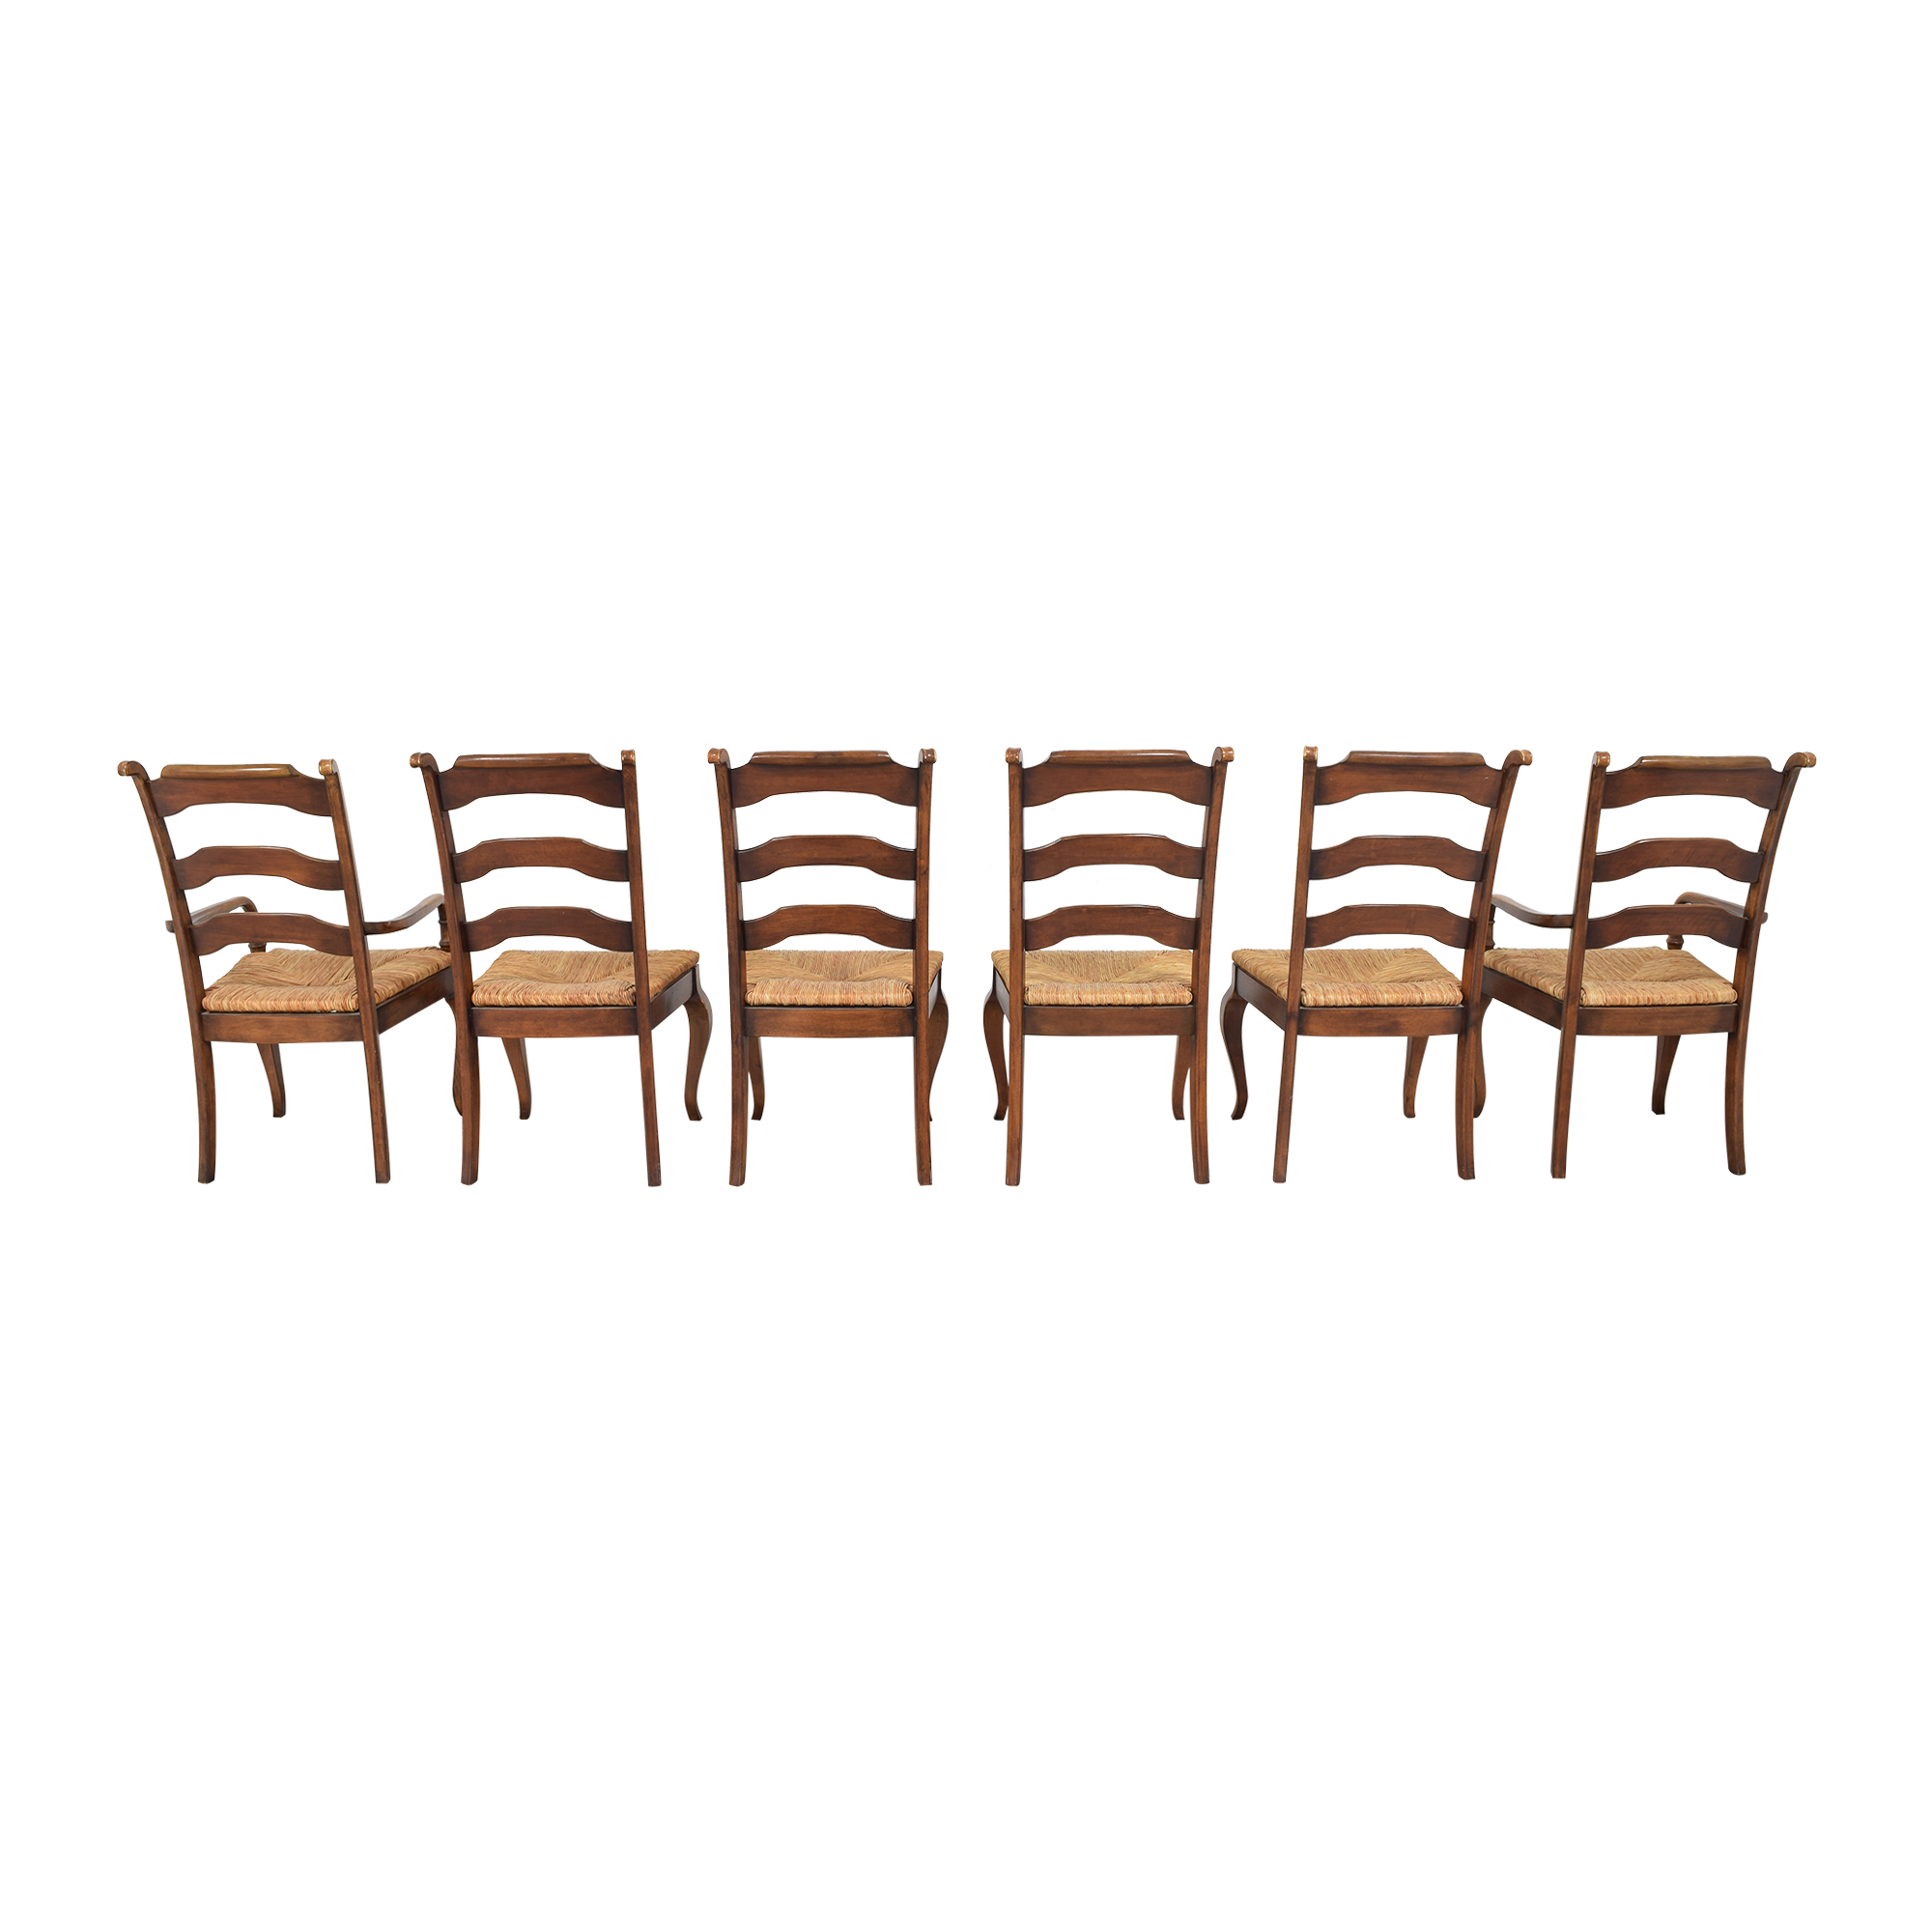 buy Hooker Furniture Woven Seat Dining Chairs Hooker Furniture Chairs